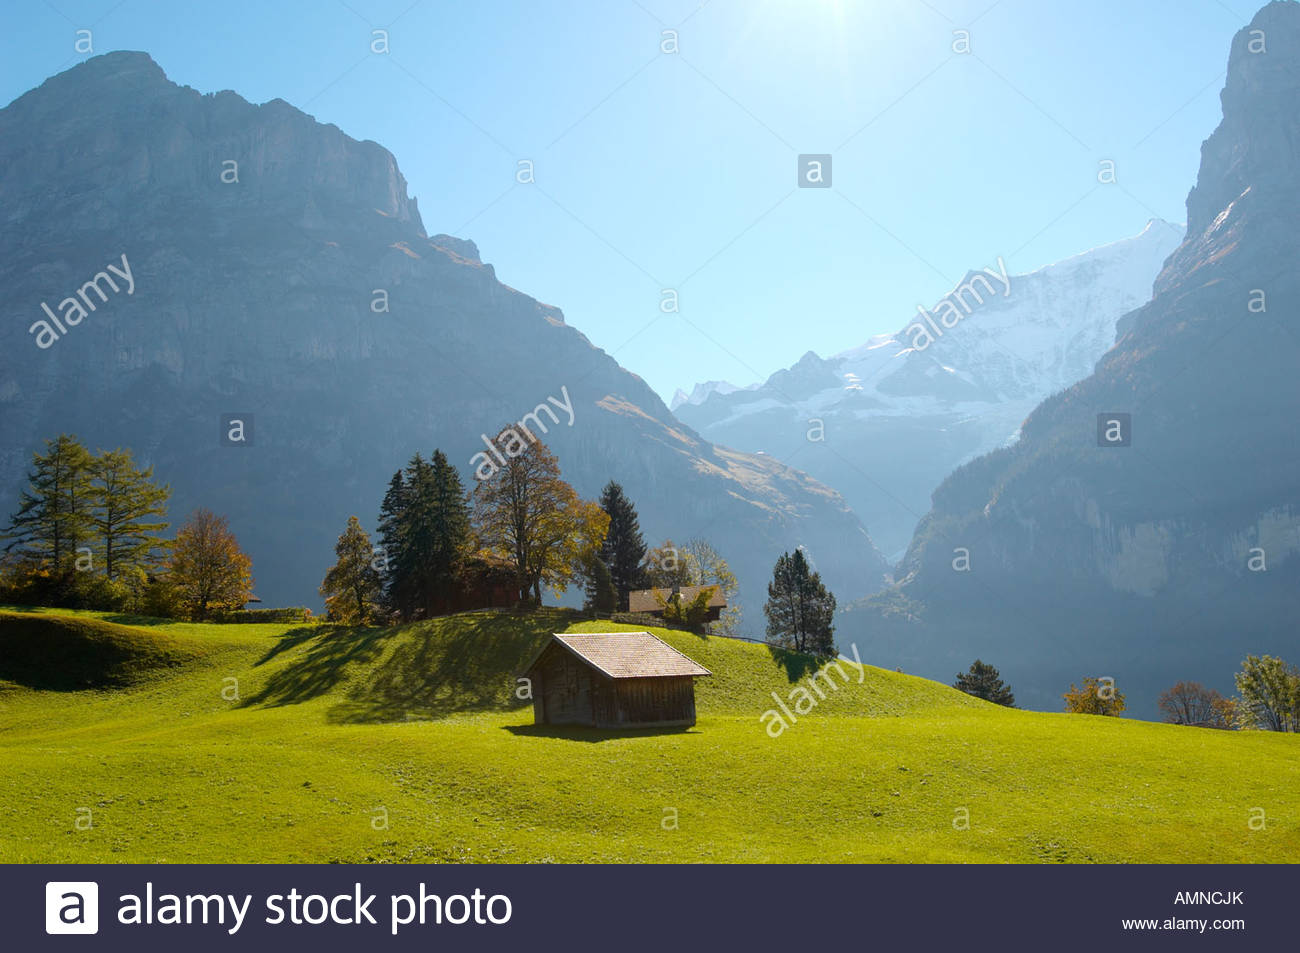 Swiss Mountain House traditional wooden swiss house in alpine pastures with wetterhom